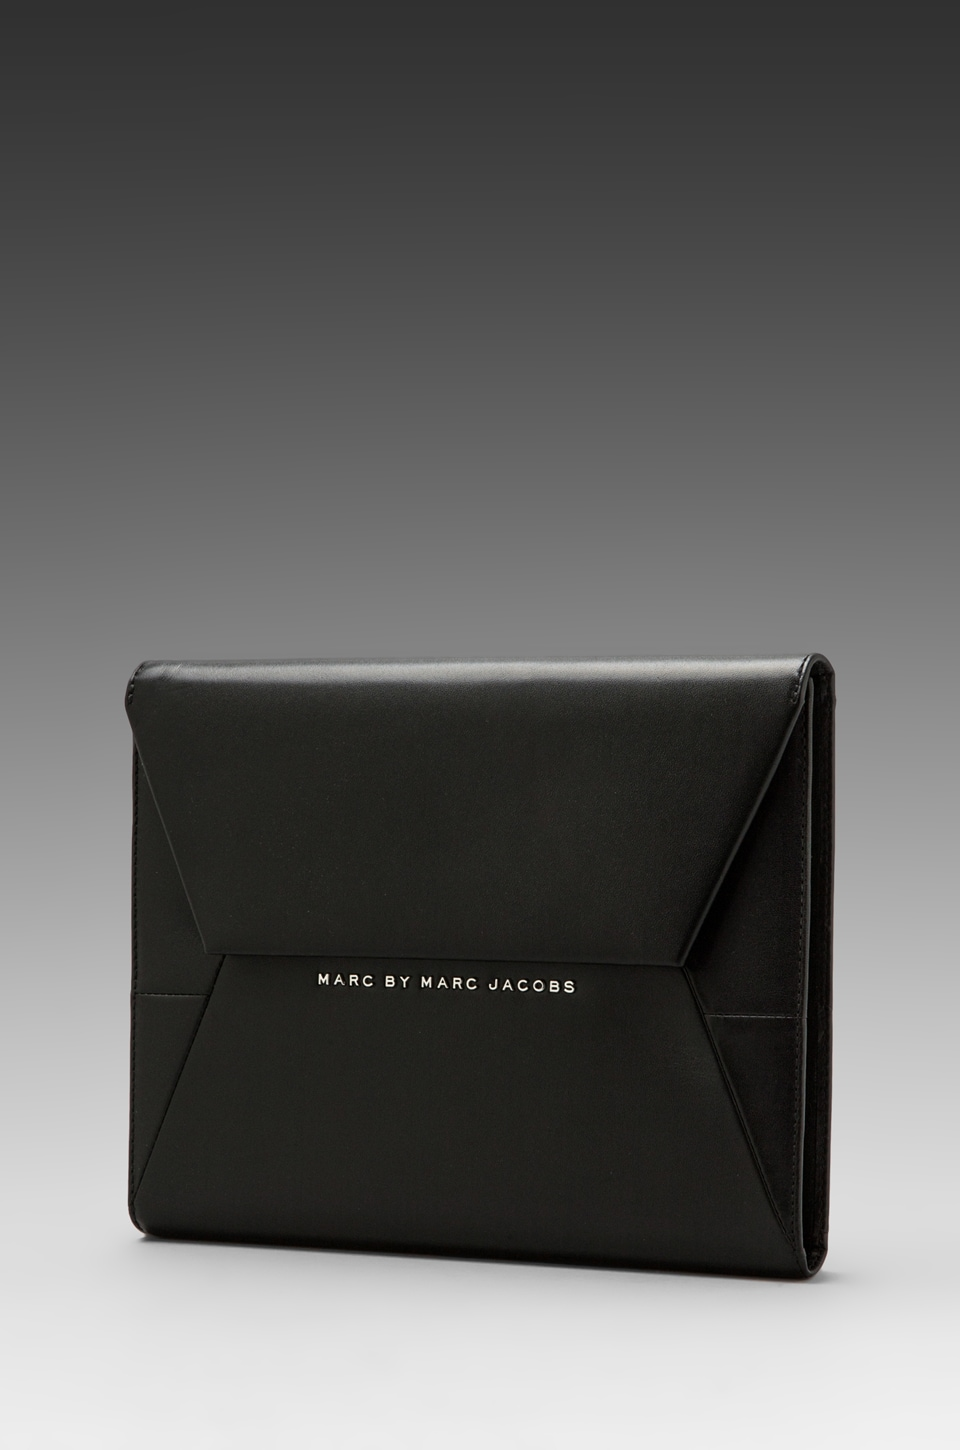 Marc by Marc Jacobs Updated Tangram Tablet Book in Black